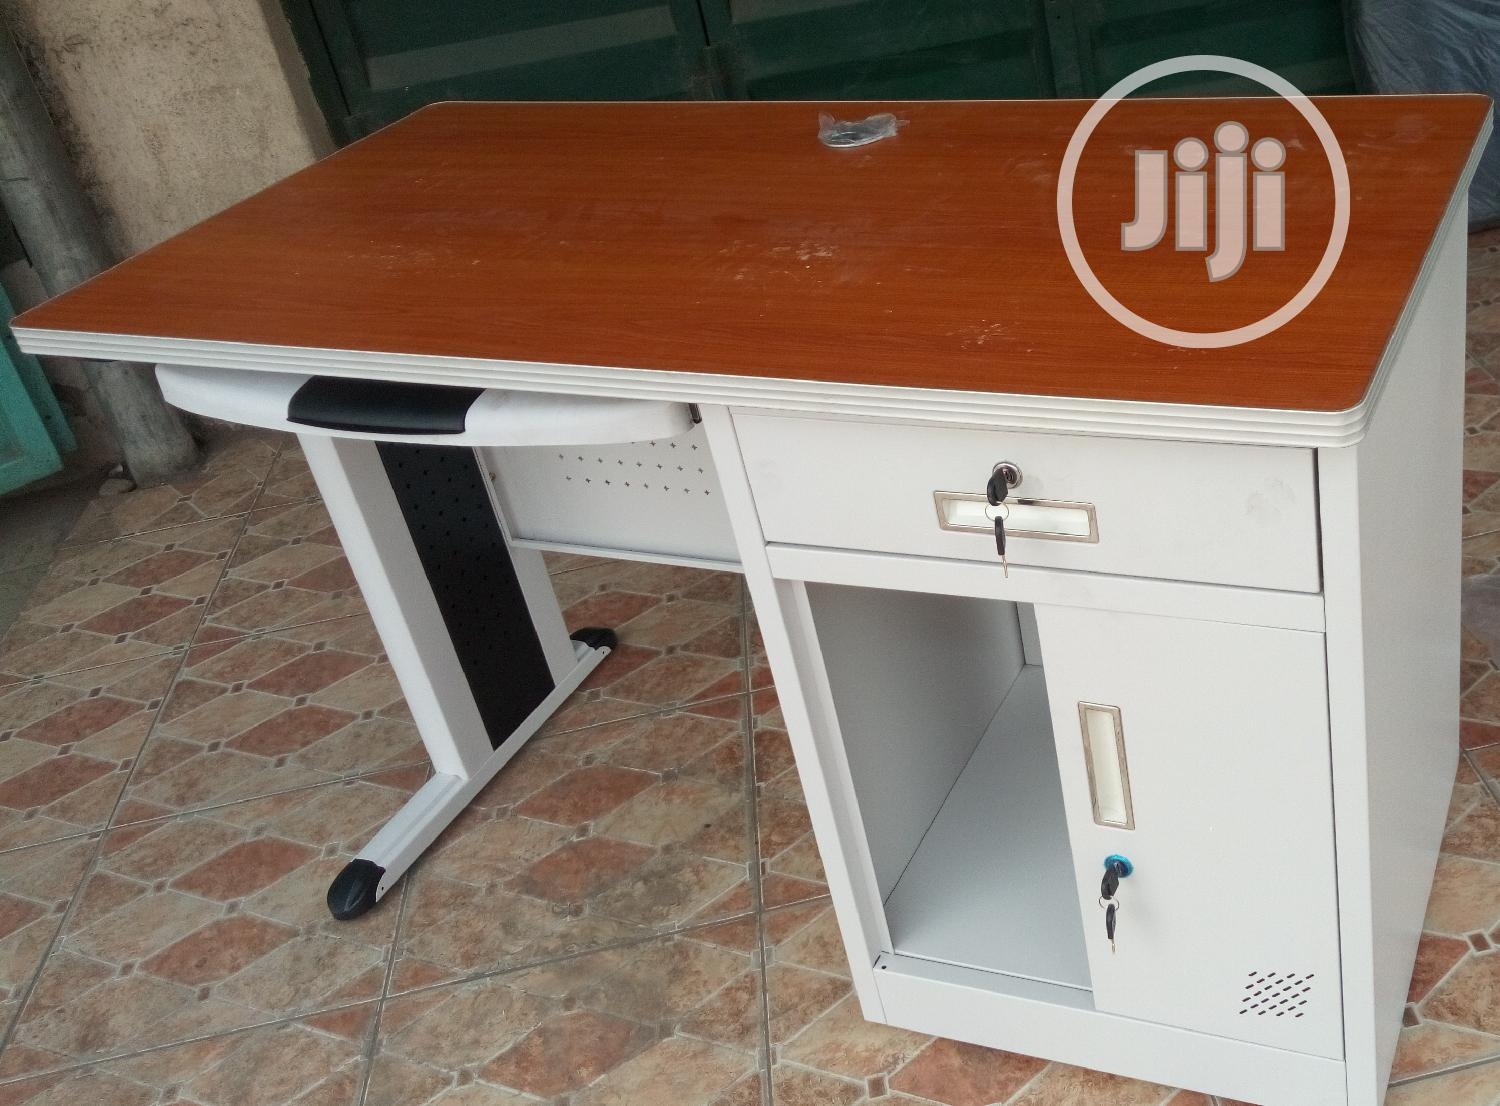 Unquie 4ft Office Metal Table Brand New Impoterd